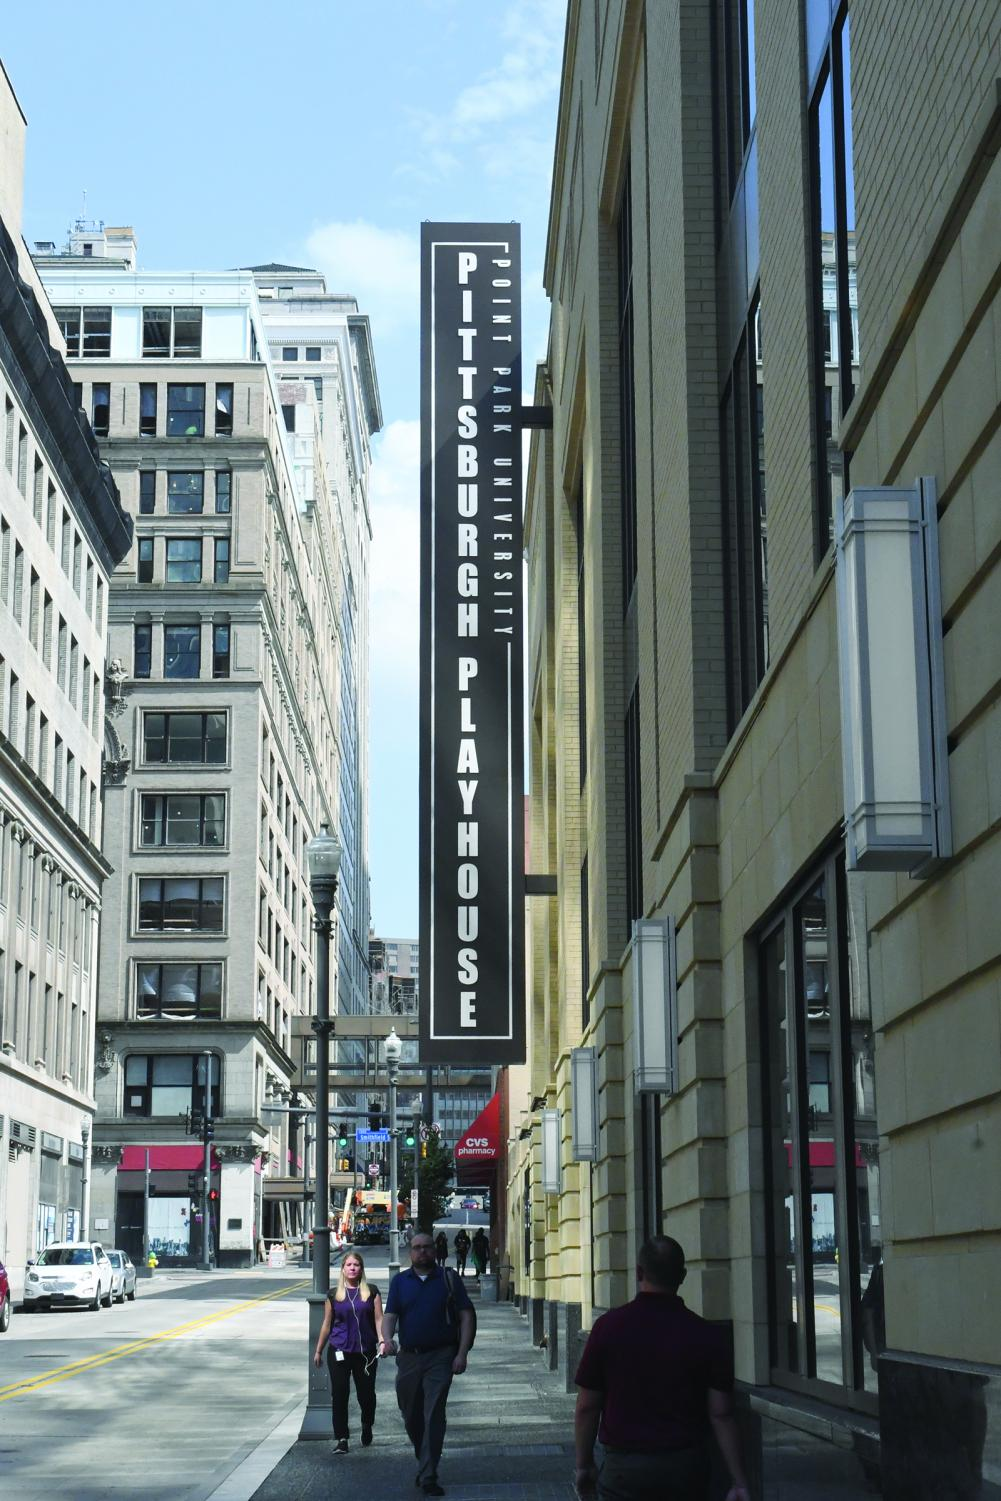 The+sign+for+the+new+Pittsburgh+Playhouse+is+unveiled.+The+space+has+now+unofficially+opened.+